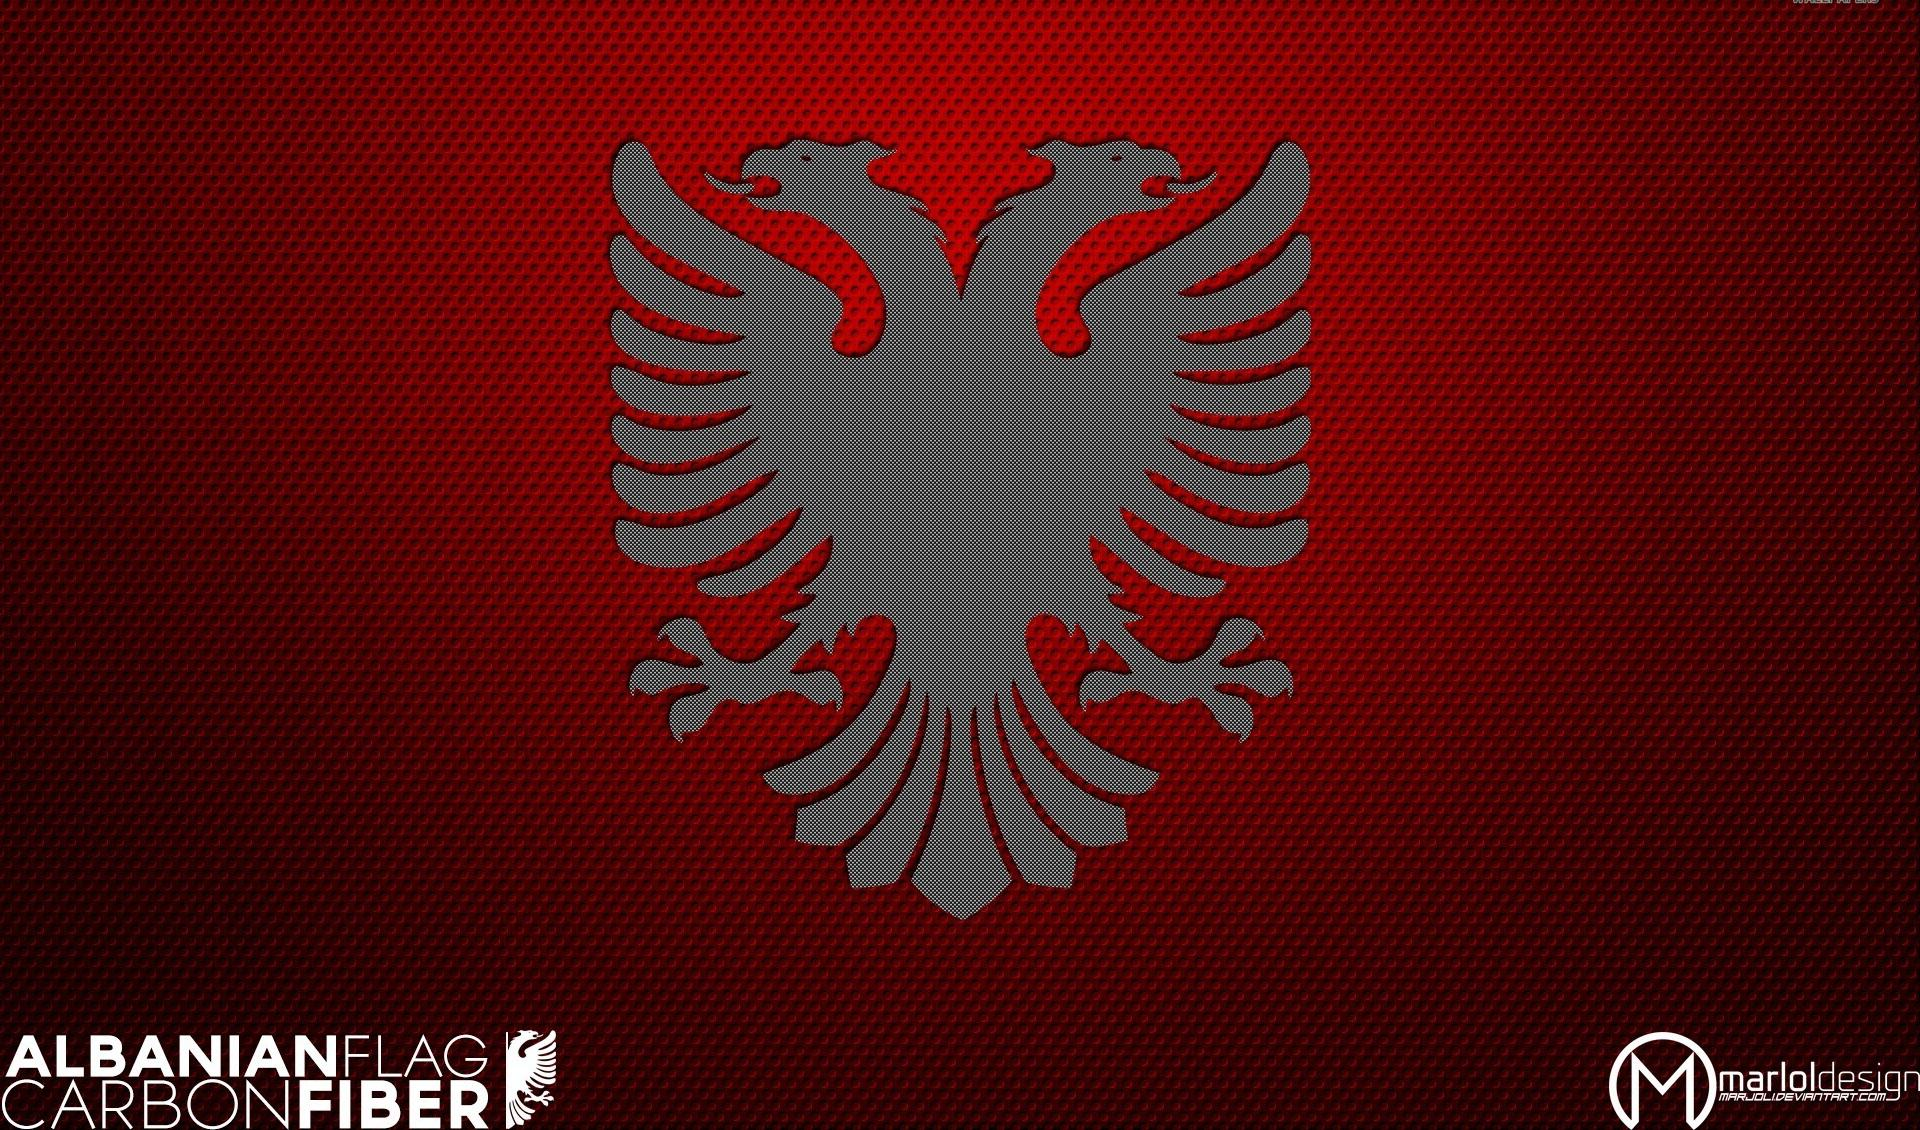 Albanian Flag wallpapers HD quality